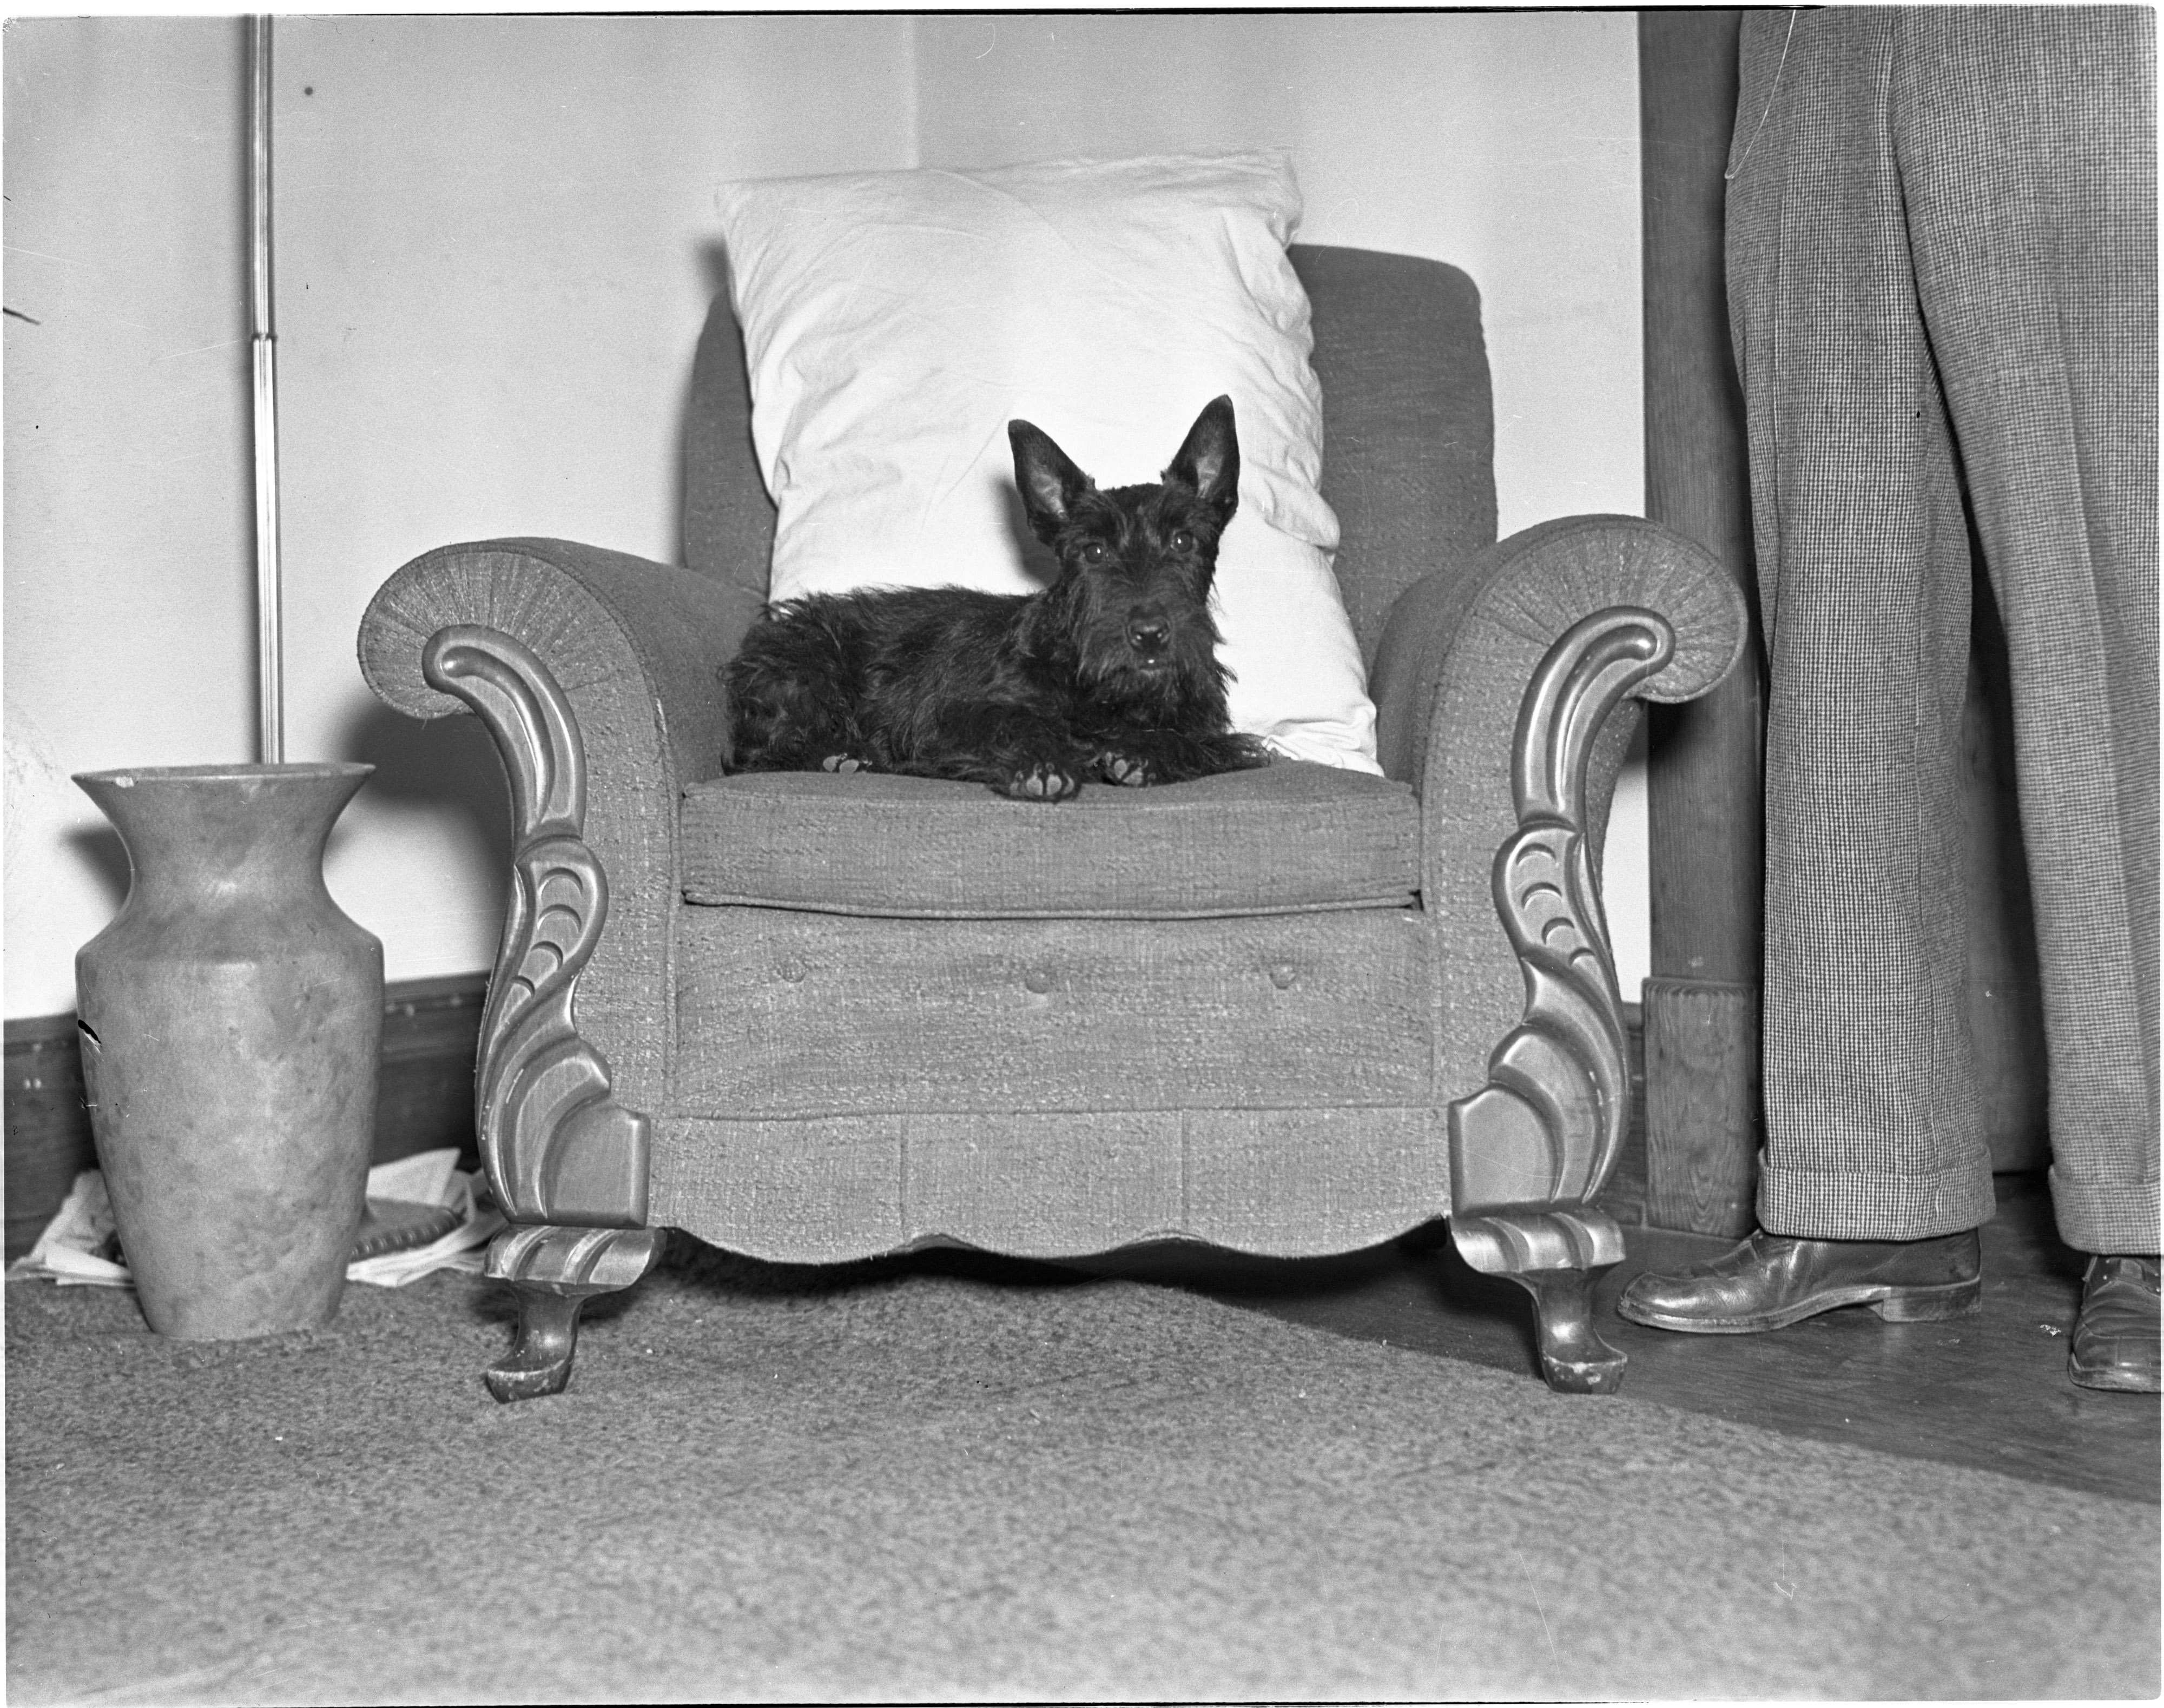 Scotland Terrier image